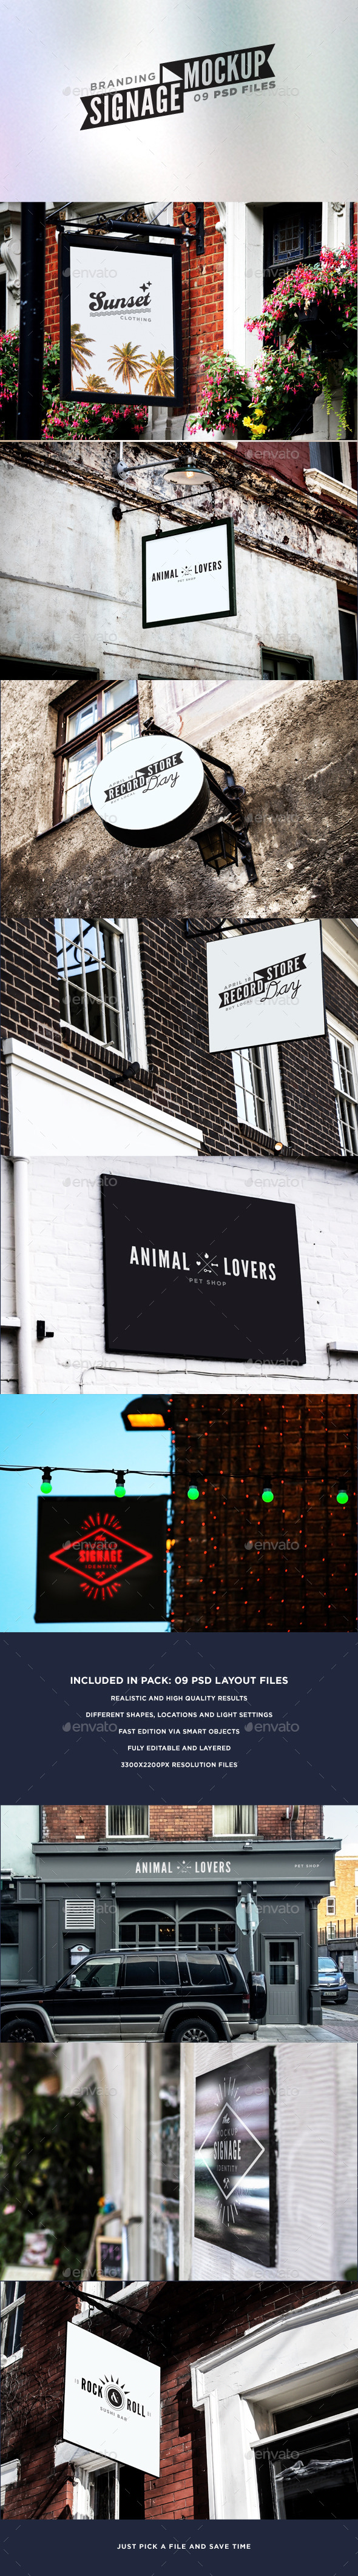 GraphicRiver Signage & Facade Mock Up 11044878